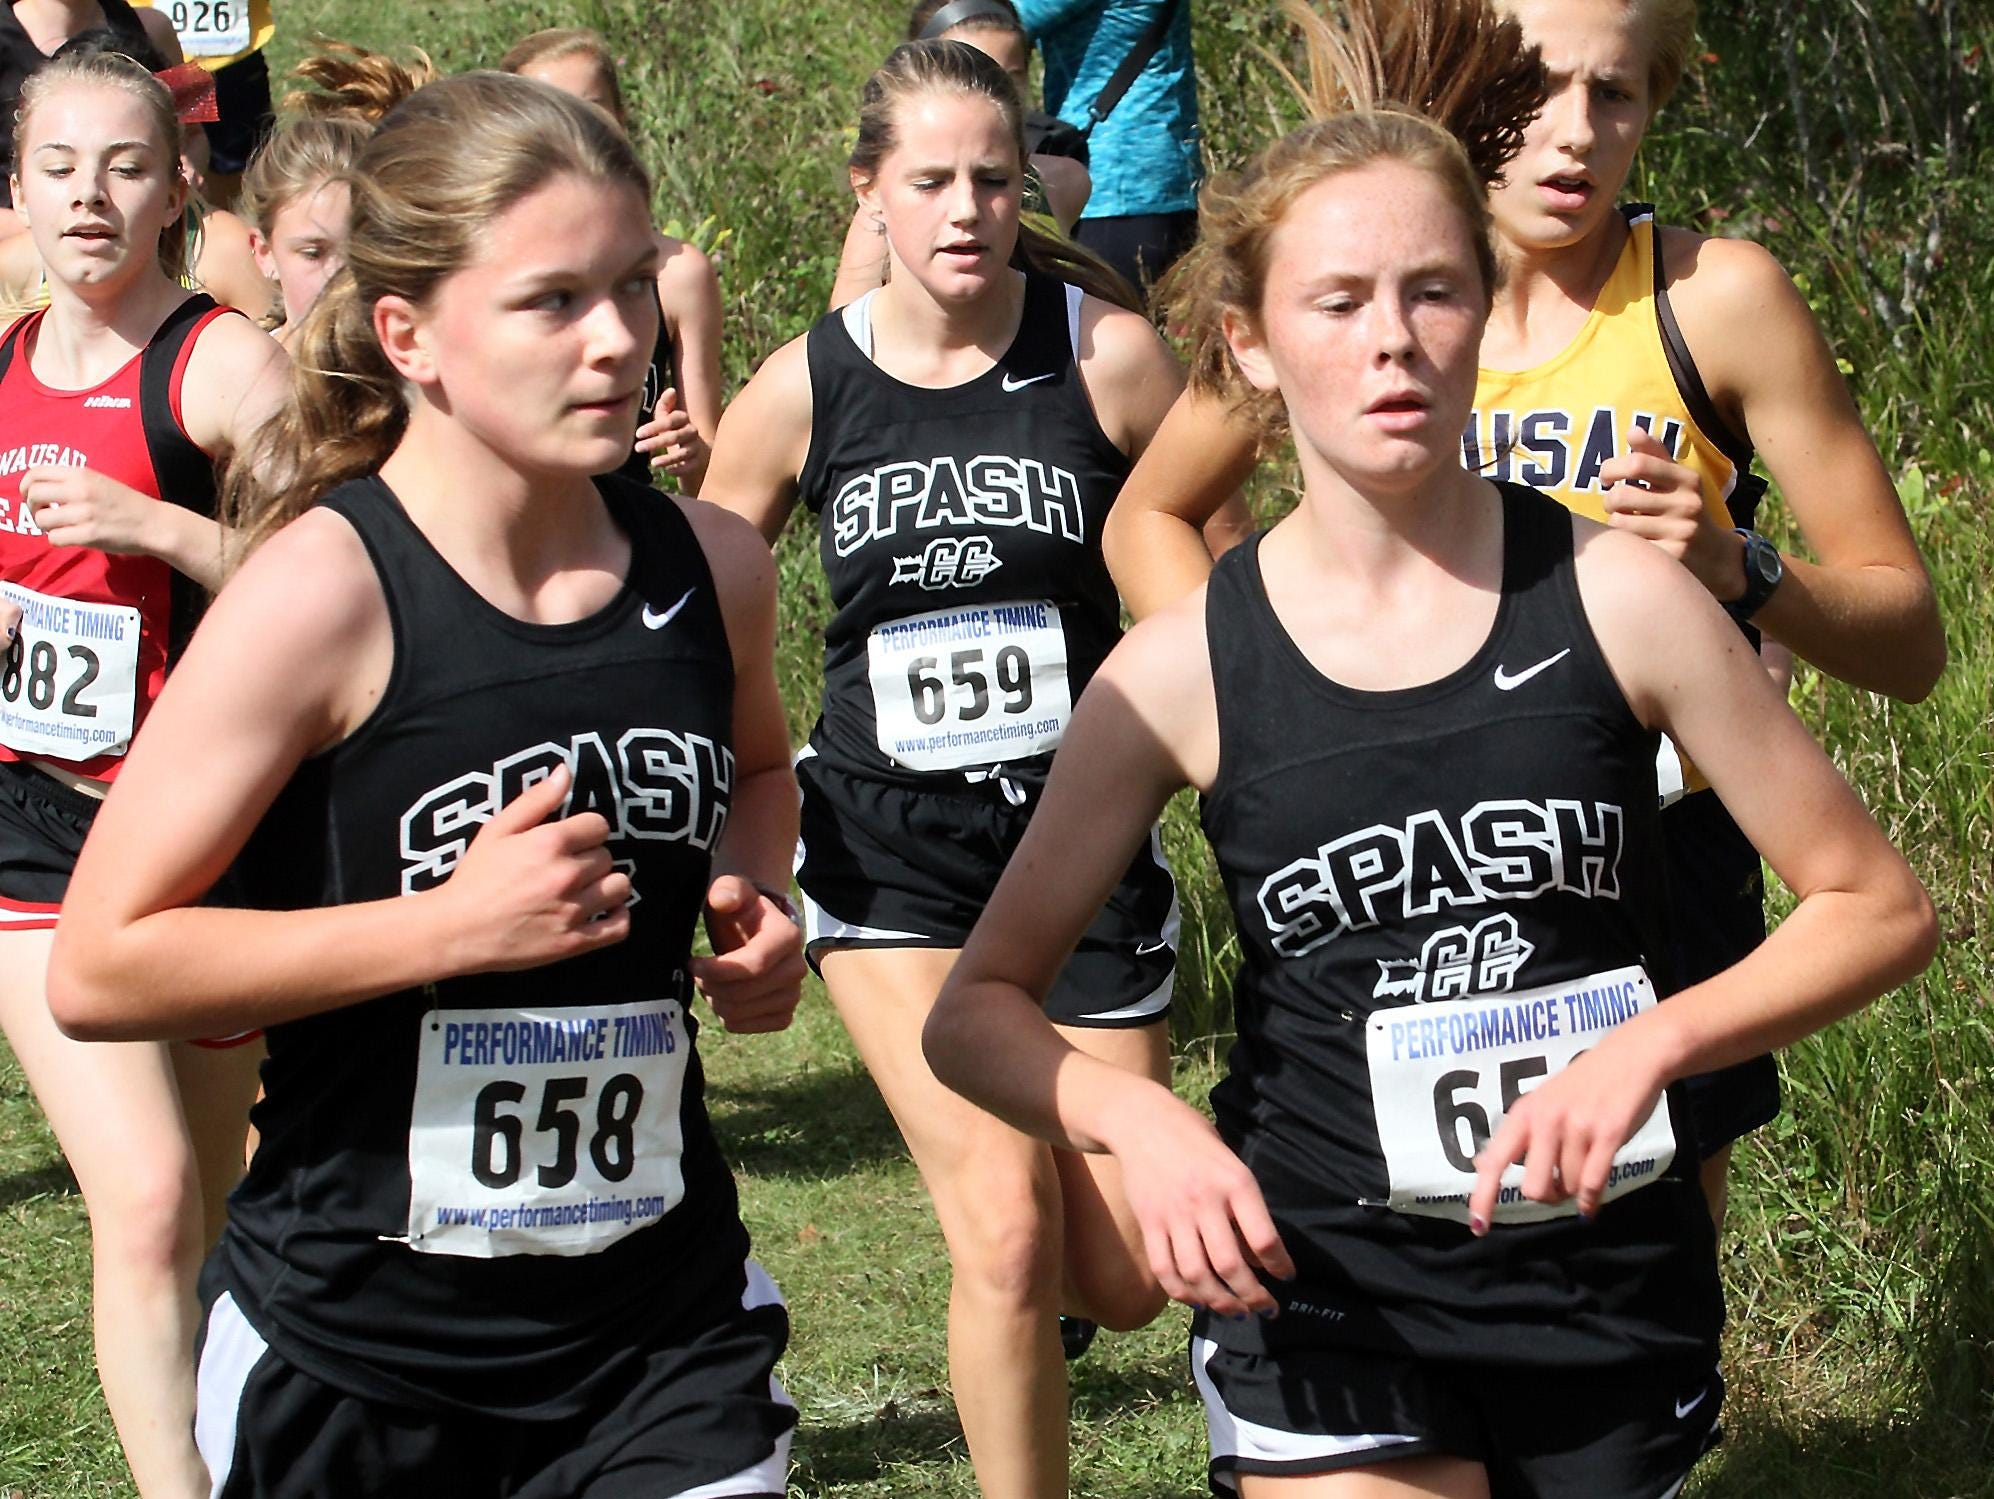 Autum Shurbert-Hetzel, SPASH, left, runs with her teammates Erica Vanhelden and Kimby Klein during the the SPASH Invitational Saturday at Standing Rocks County Park near Plover.